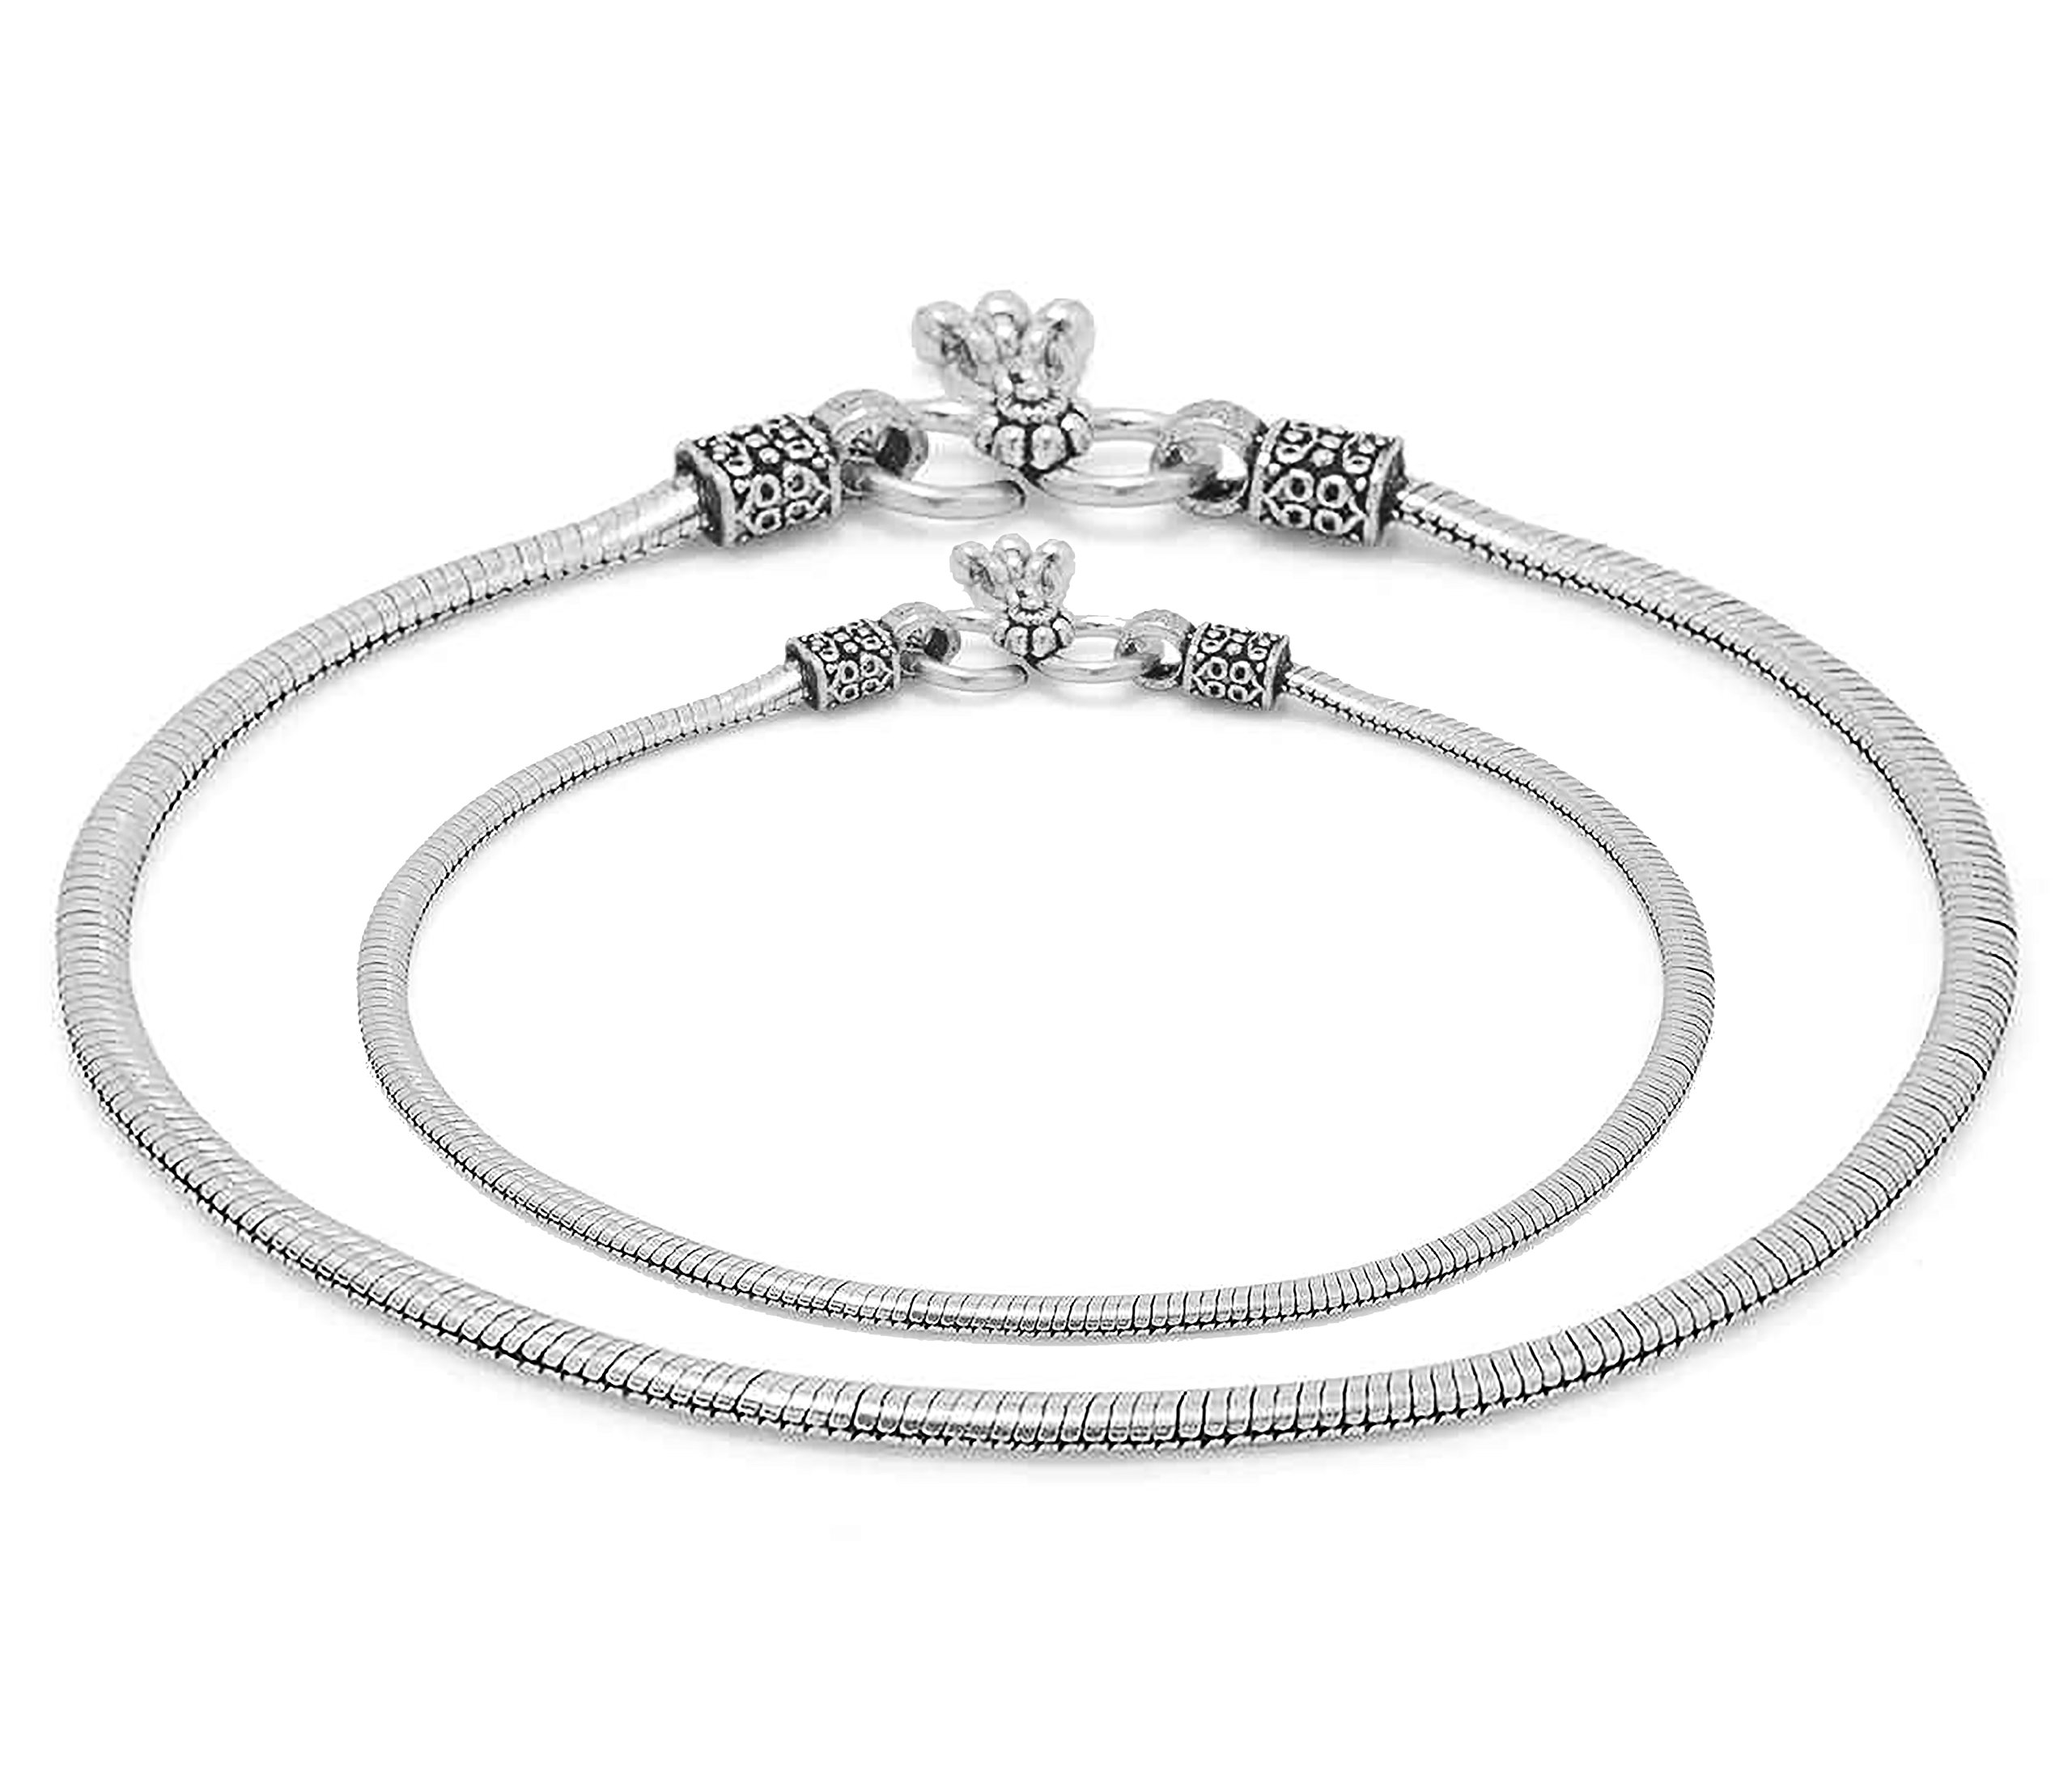 D&D Crafts Oxidized Silver Tone Sterling Silver Anklets Pair For Girls, Women by D&D (Image #1)